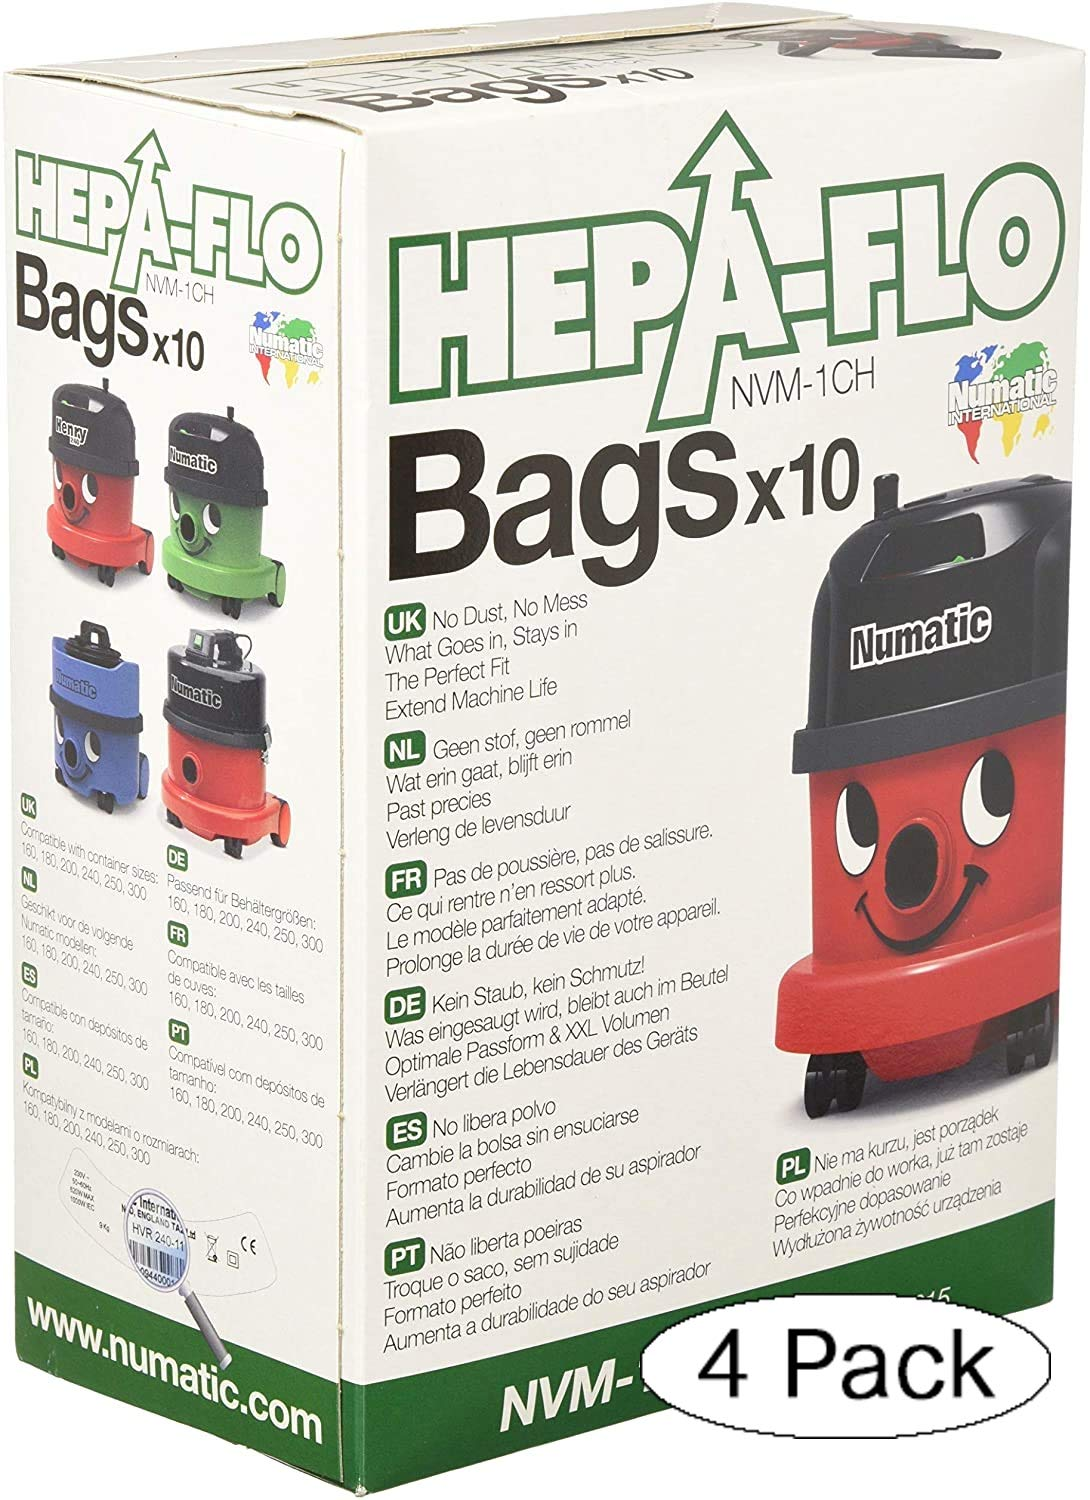 Paper Dust Bags for Numatic Henry Hoover Vacuum Cleaner by henry hetty james